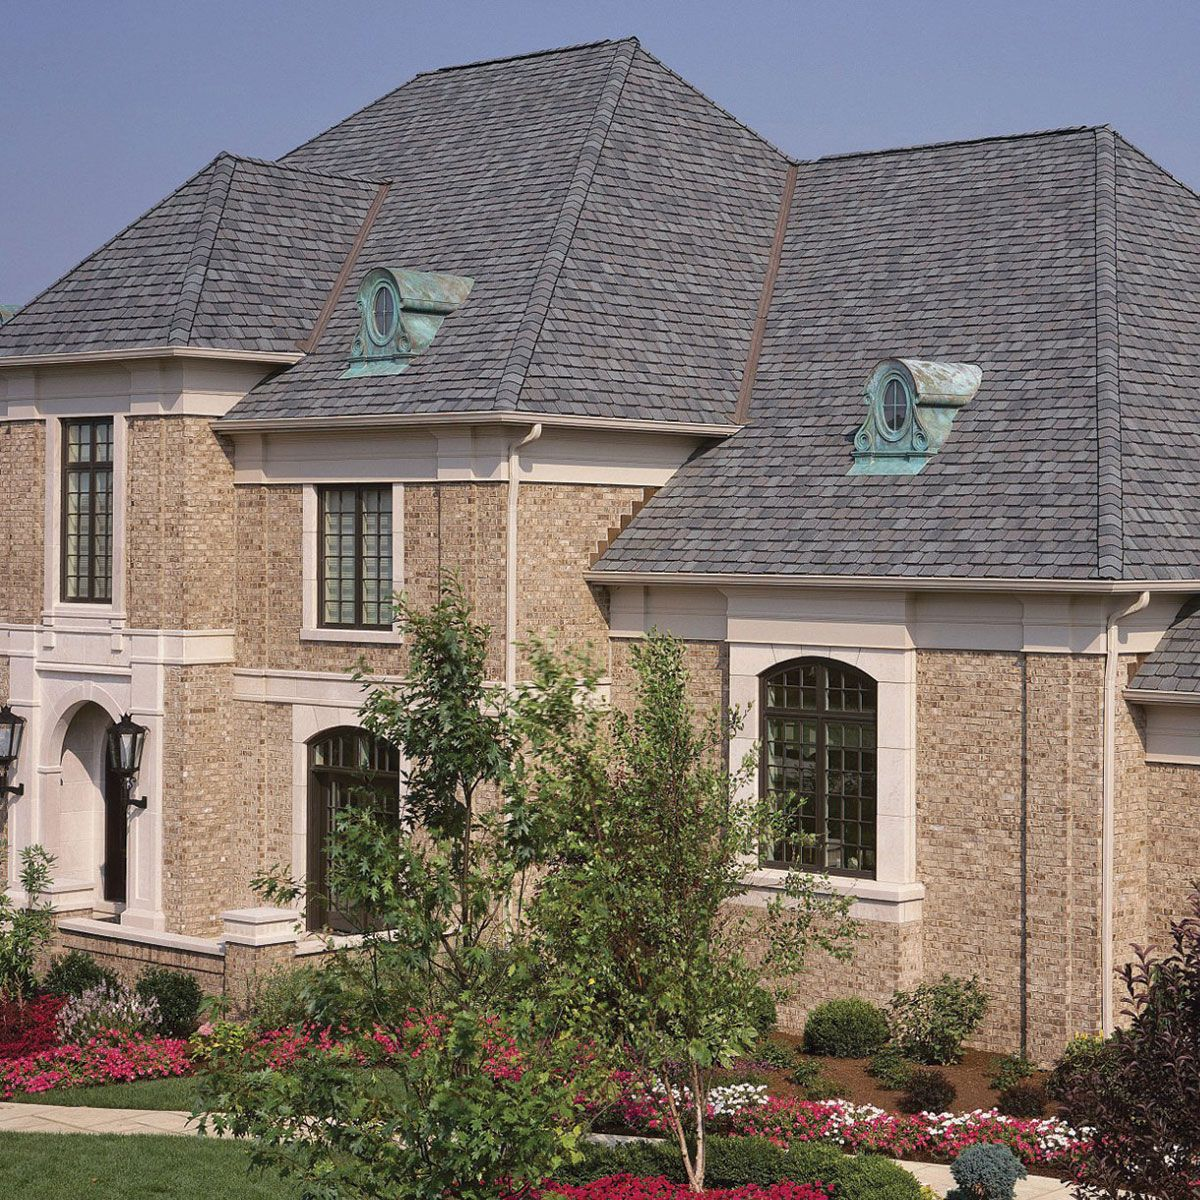 Best Certainteed Colonial Slate Grand Manor Roof Shingle Colors Architectural Shingles Certainteed 400 x 300